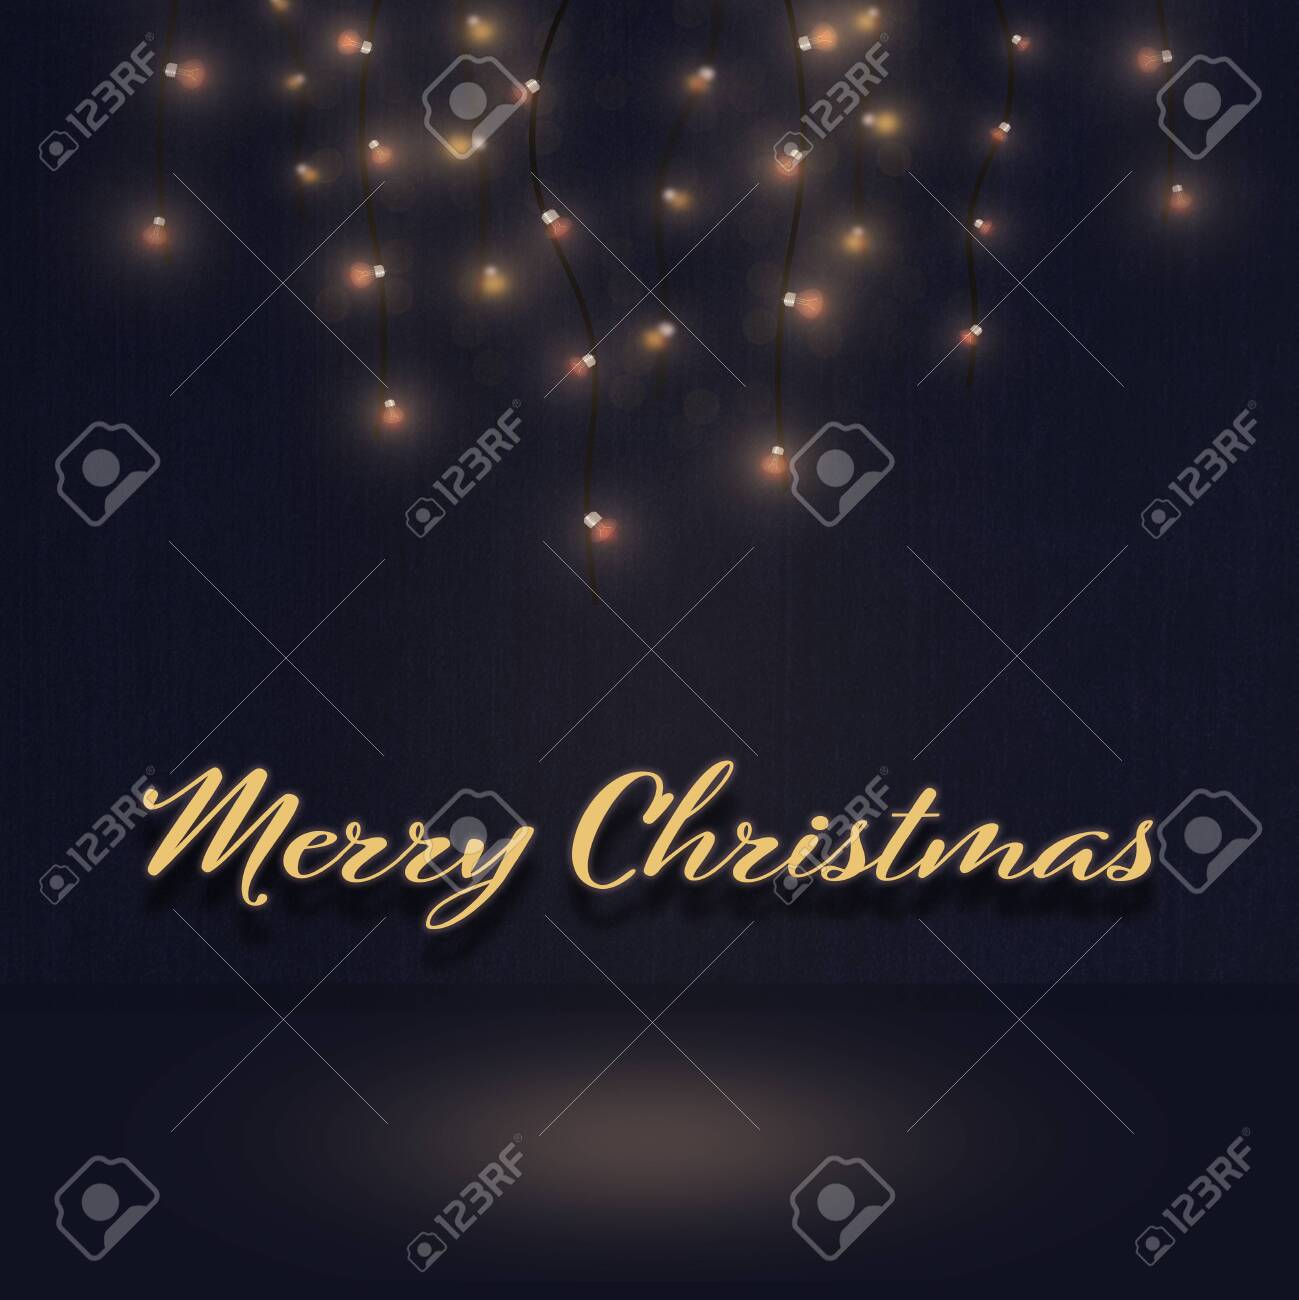 Christmas time. Light illustration. Background. Text: Merry Christmas. - 131100496